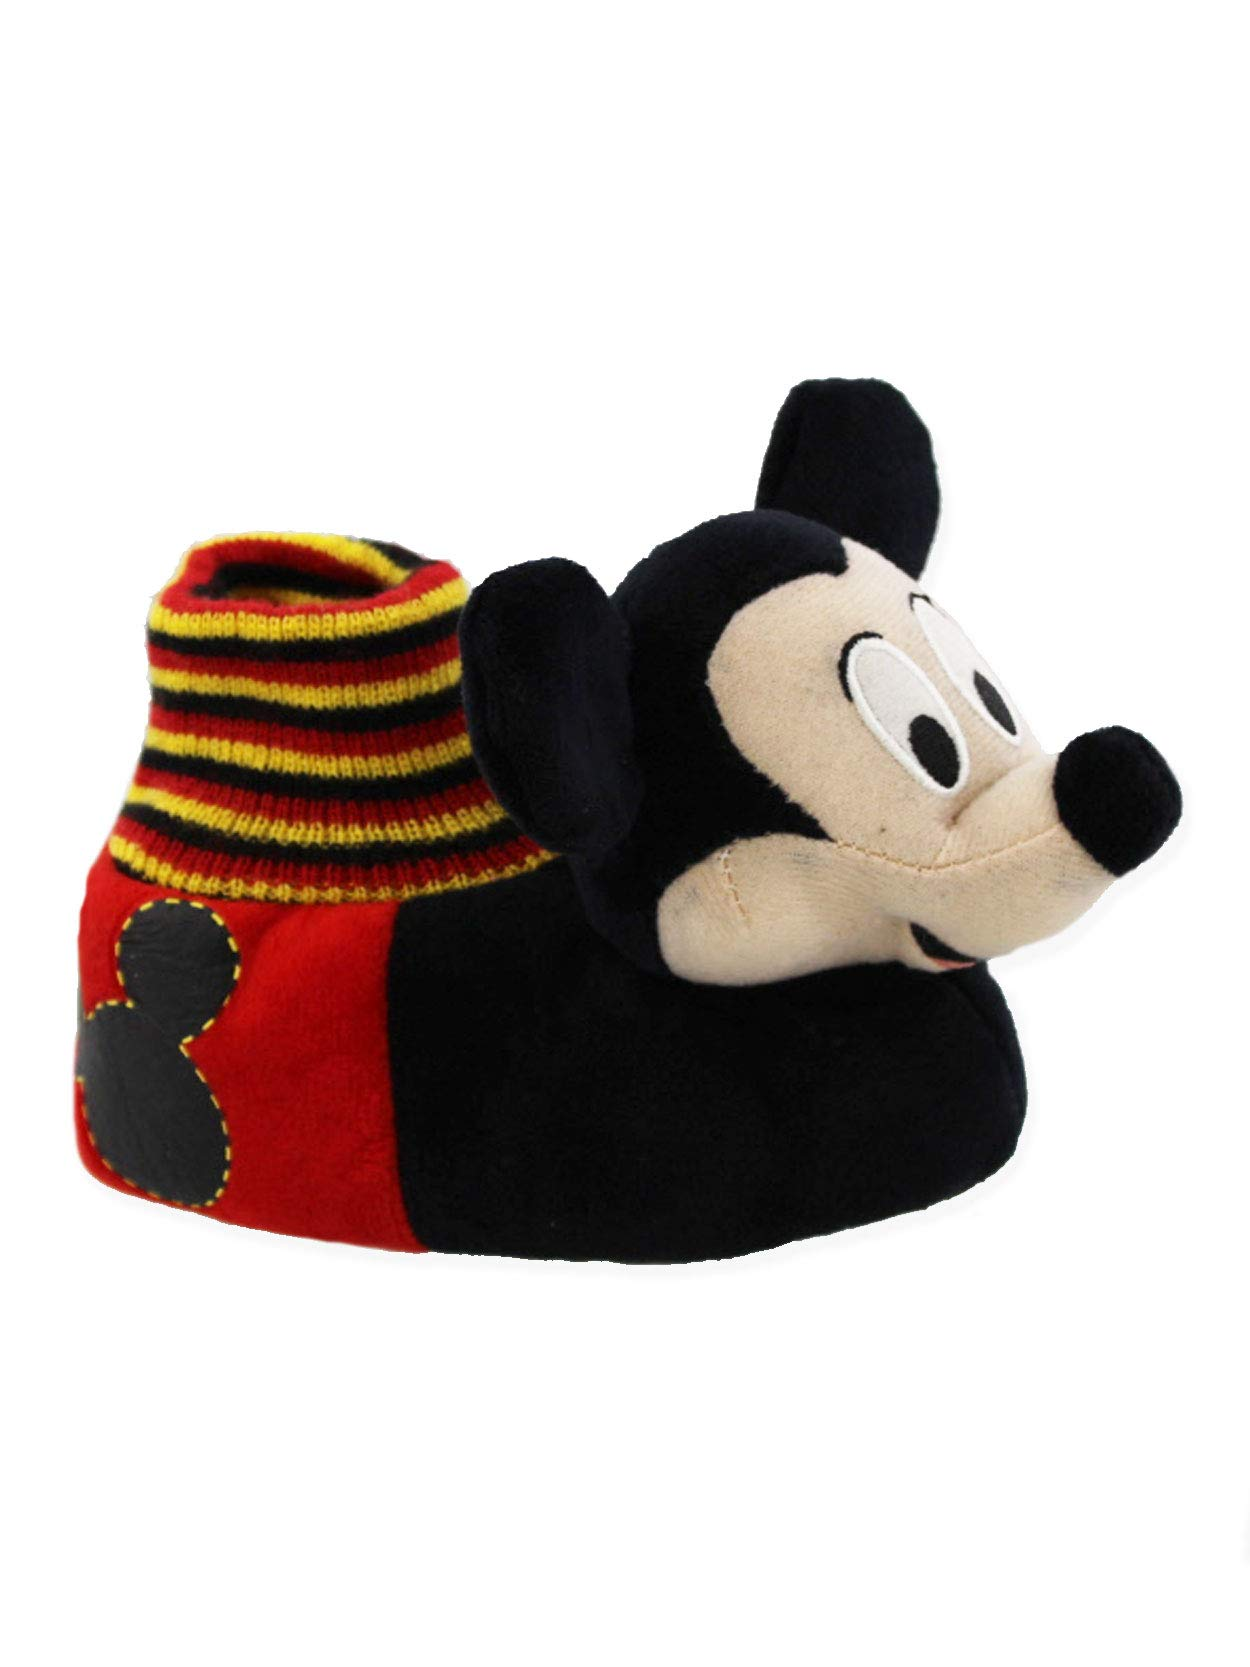 Stompeez Animated Minnie Mouse Plush Slippers Ultra Soft and Fuzzy Ears Flap as You Walk